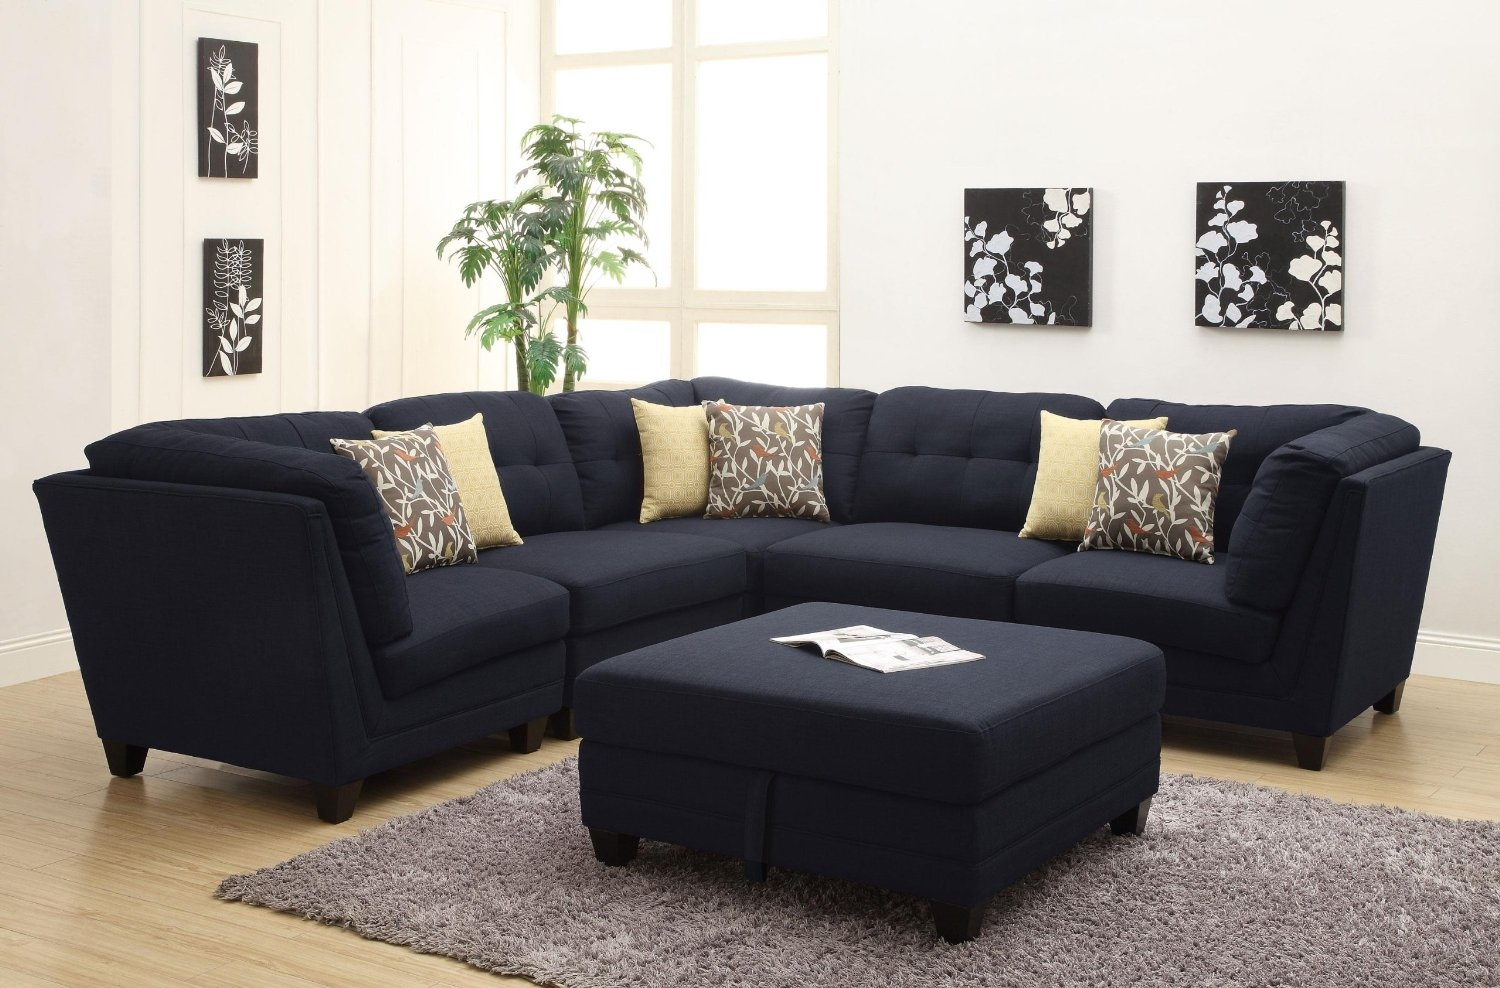 Most Beautiful Sectional Sofas Hereo Sofa Throughout Dobson Sectional Sofa (#8 of 12)